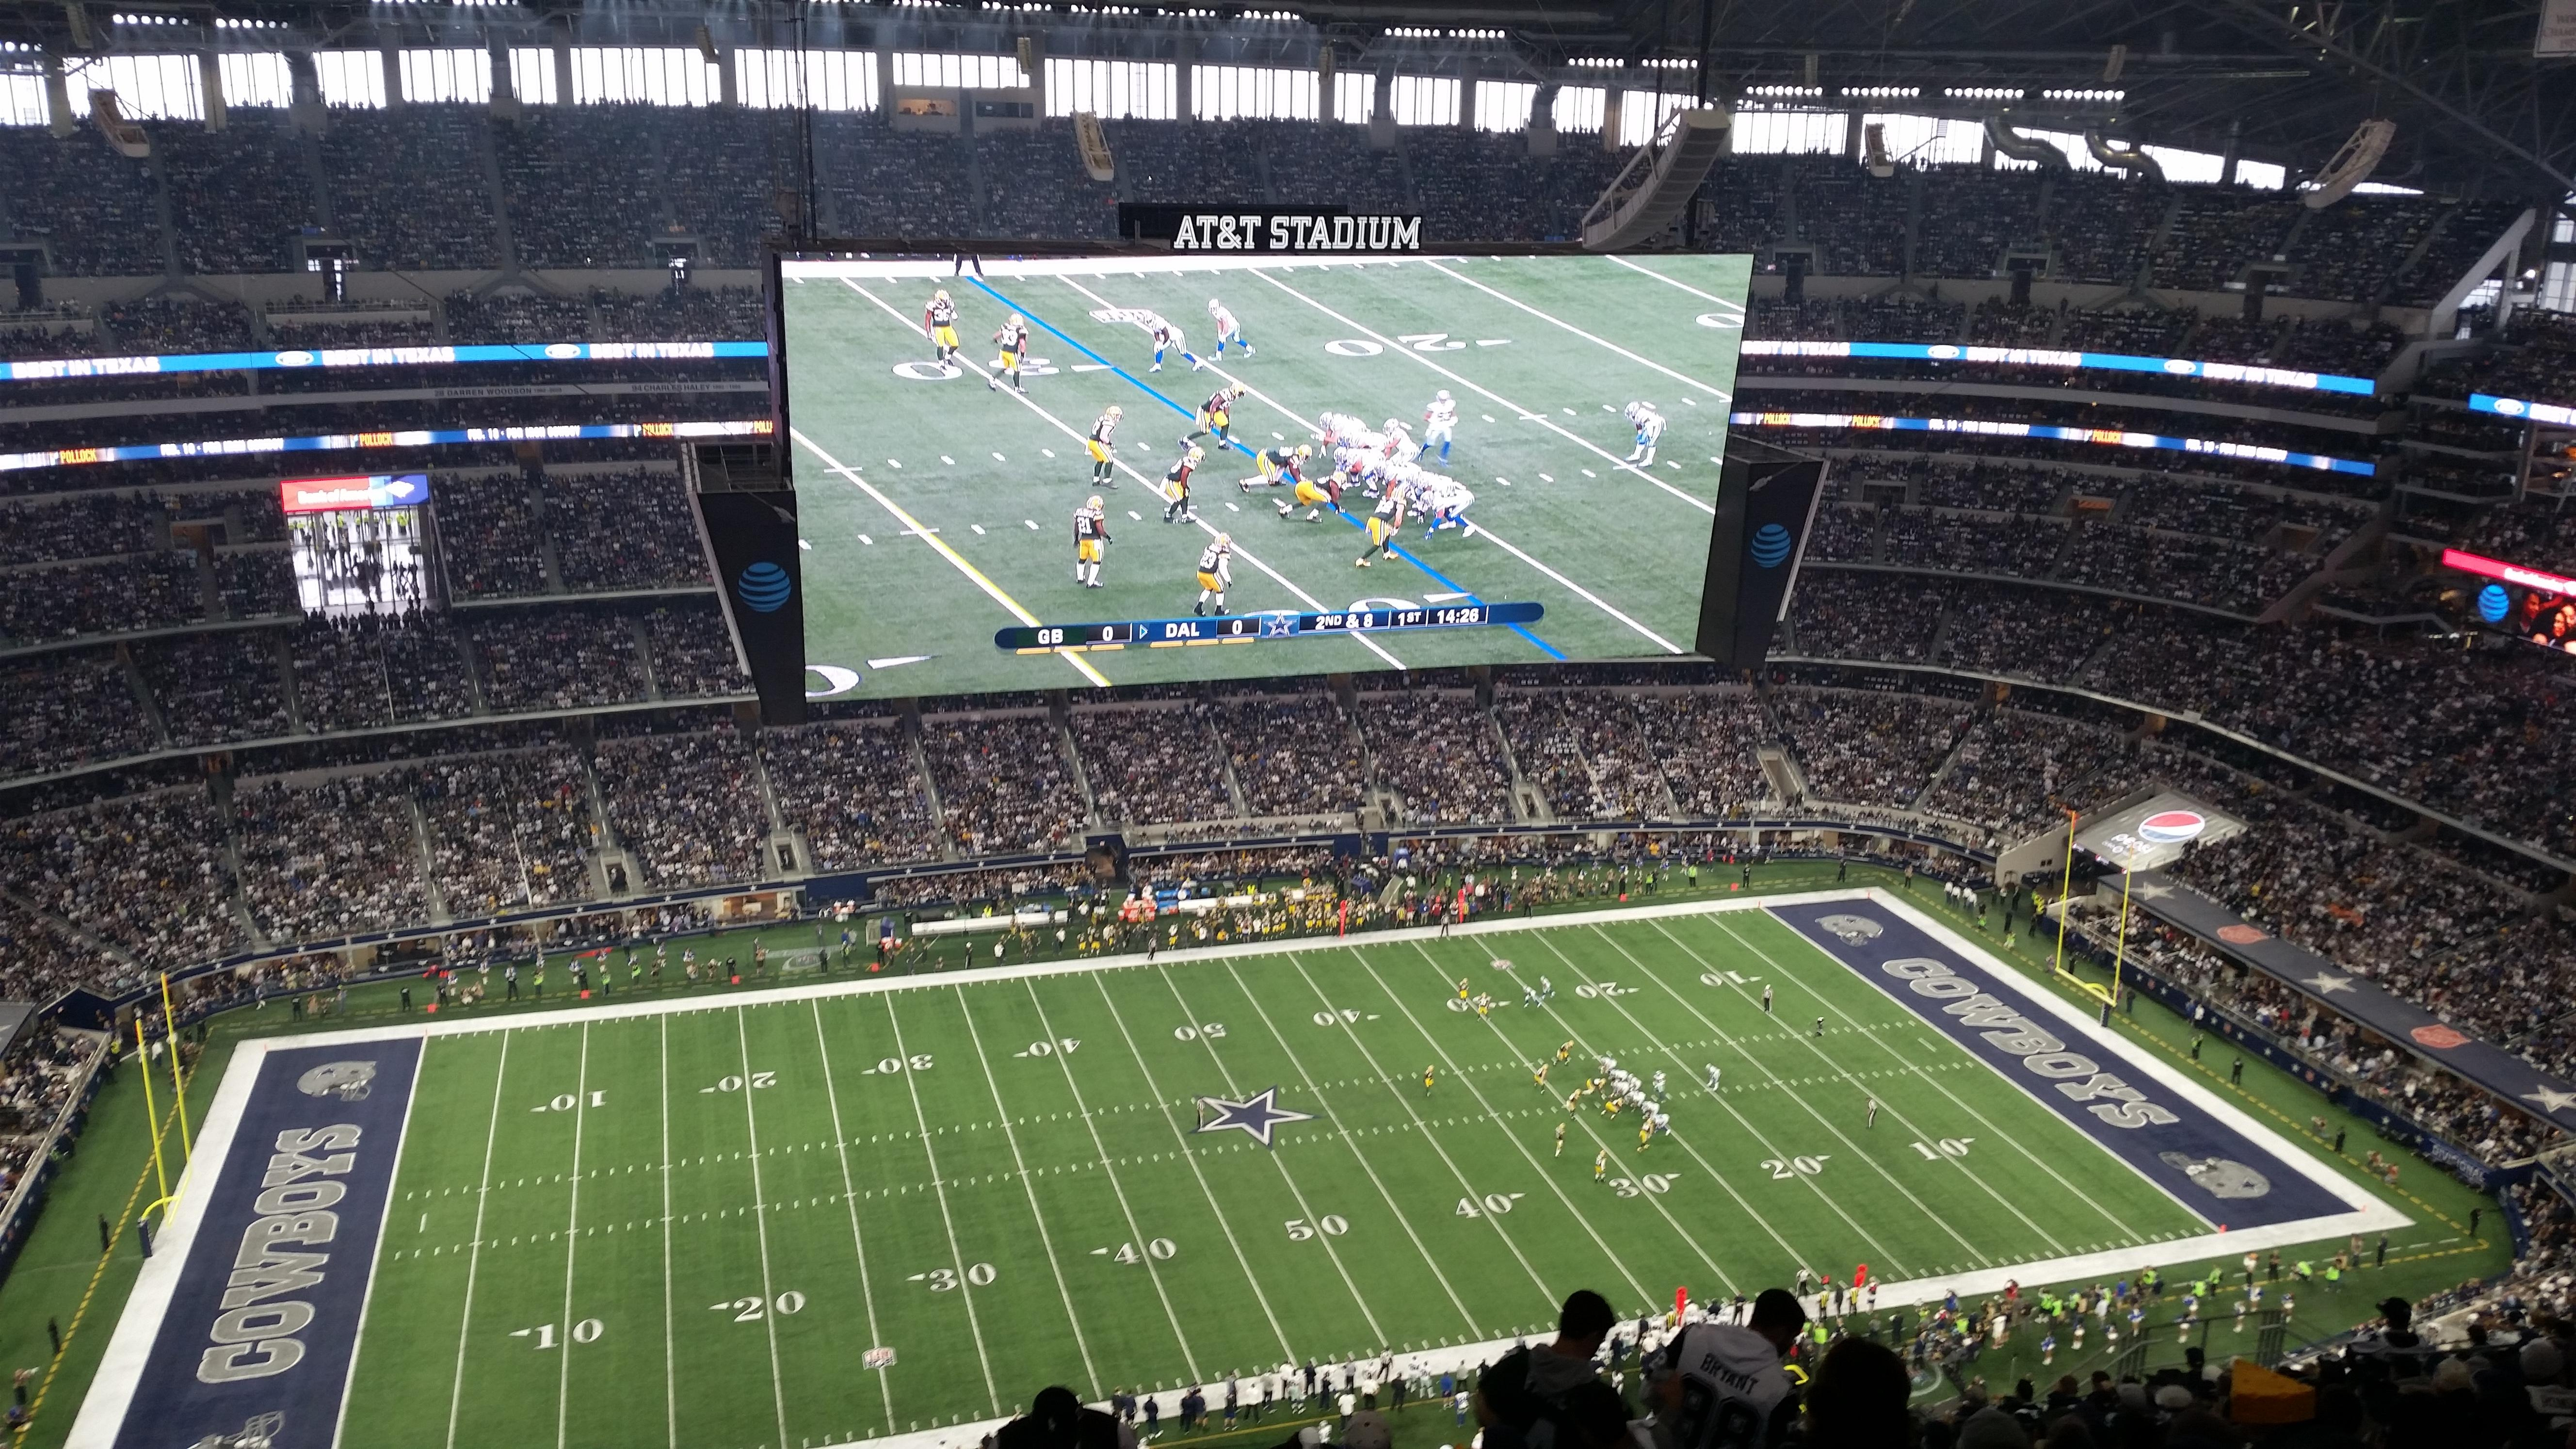 AT&T Stadium Section 415 Row 29 Seat 2